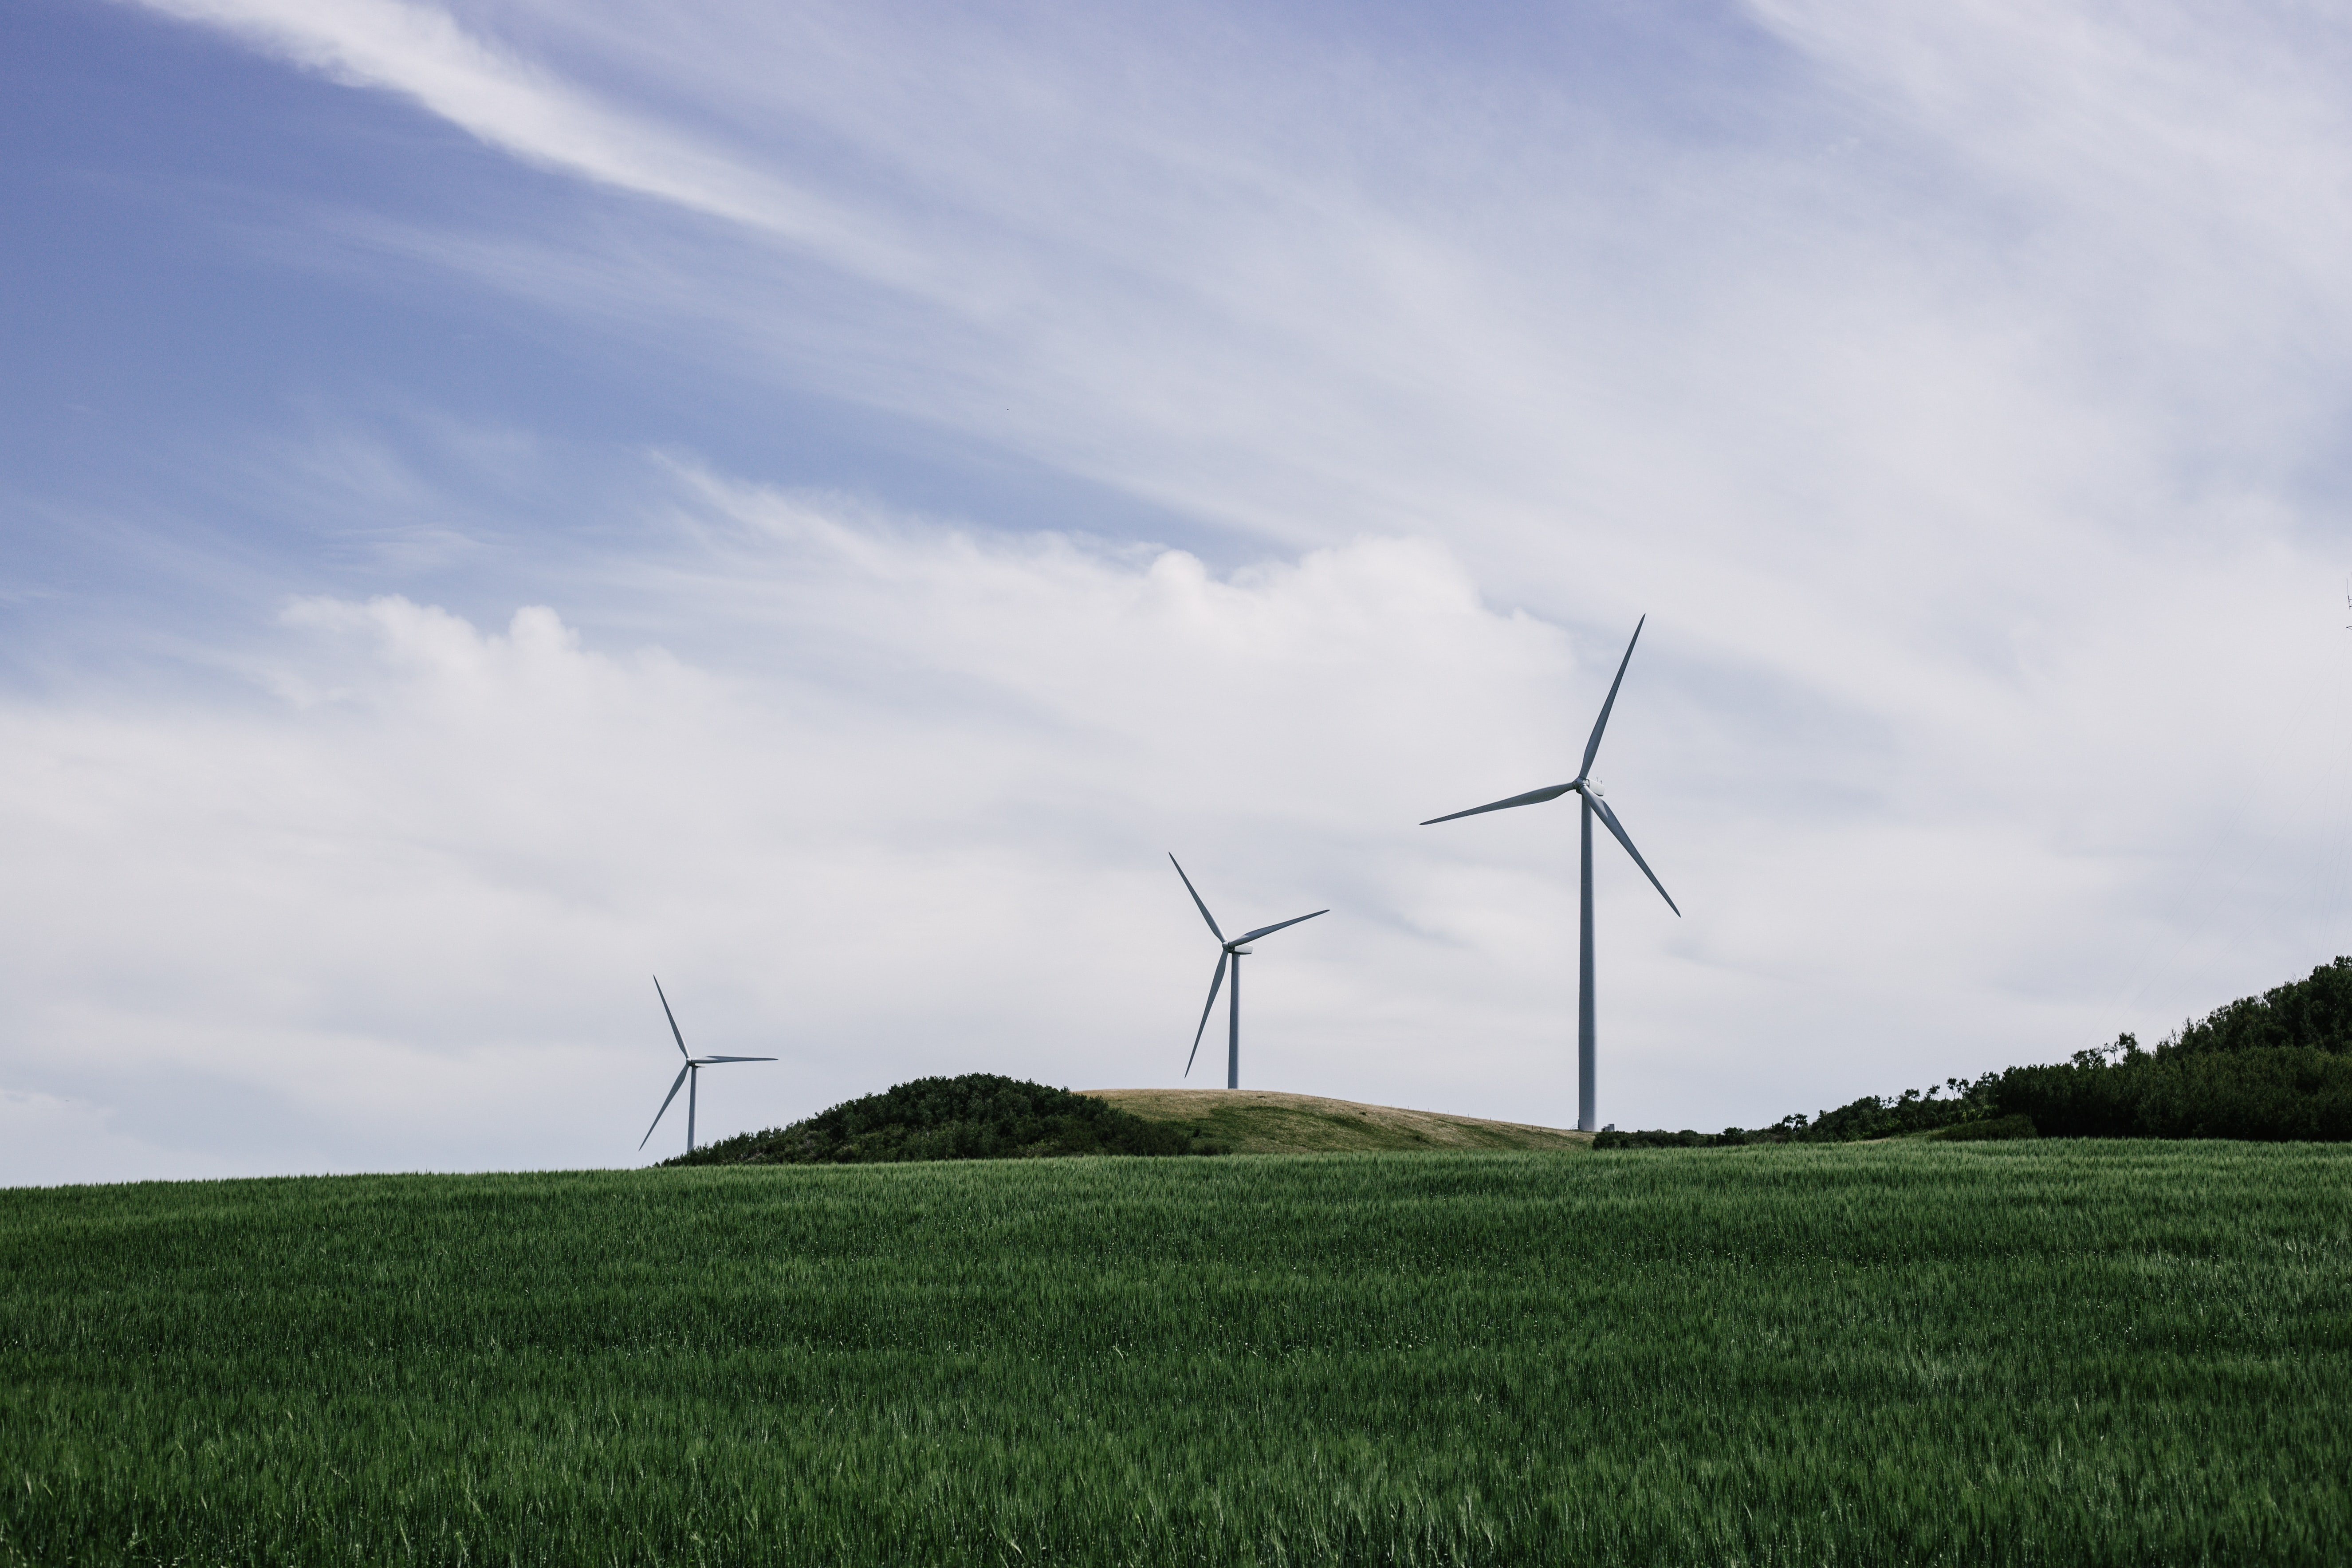 Wind turbines create green energy in a lush pasture